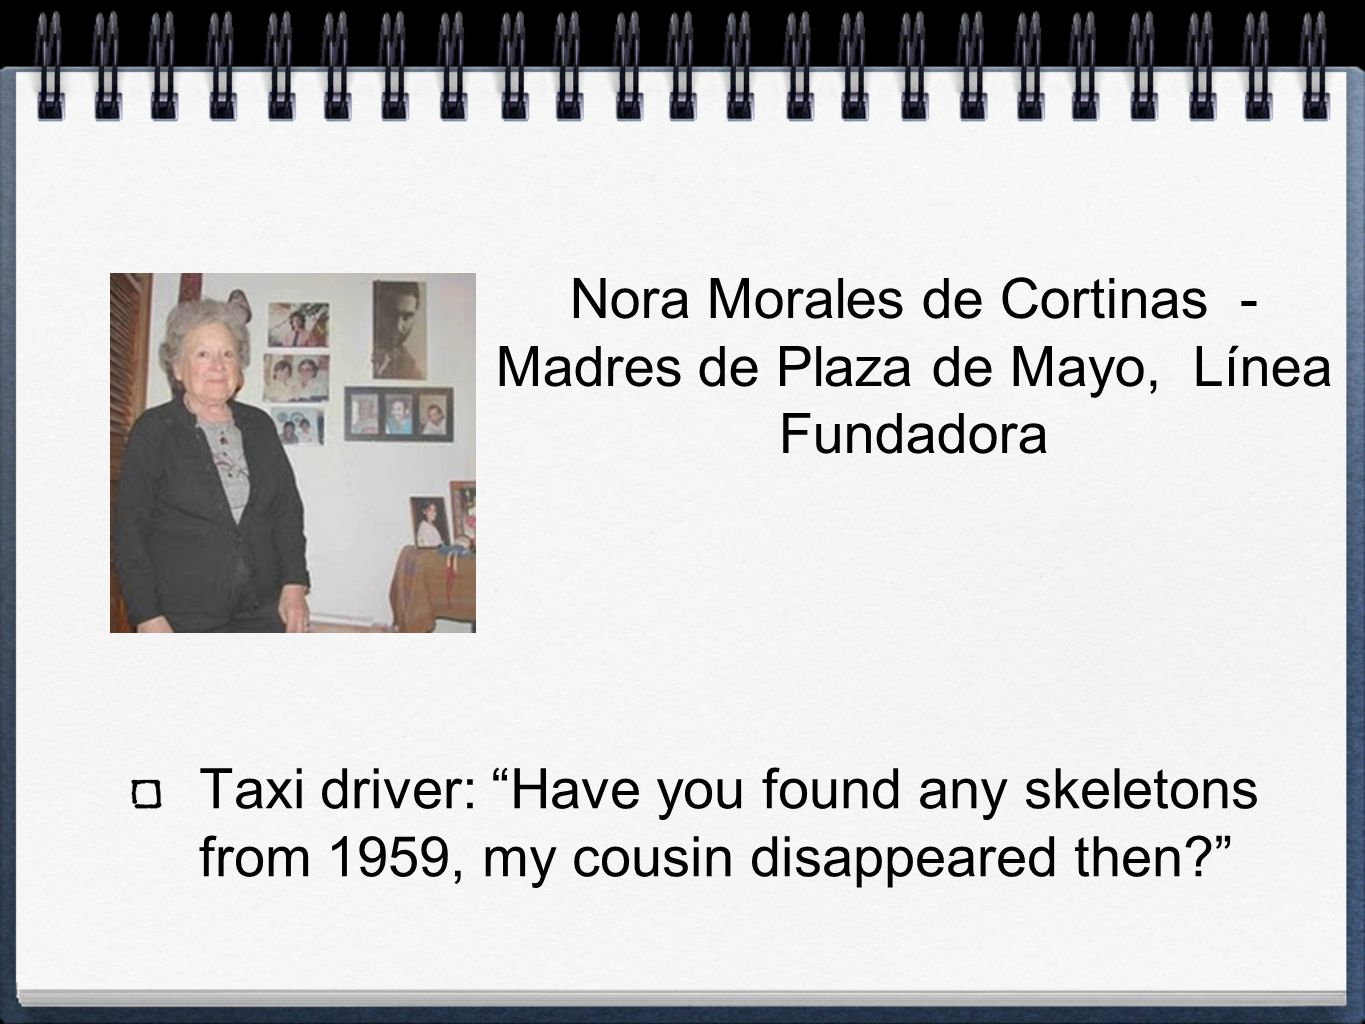 Taxi driver: Have you found any skeletons from 1959, my cousin disappeared then? Nora Morales de Cortinas - Madres de Plaza de Mayo, Línea Fundadora